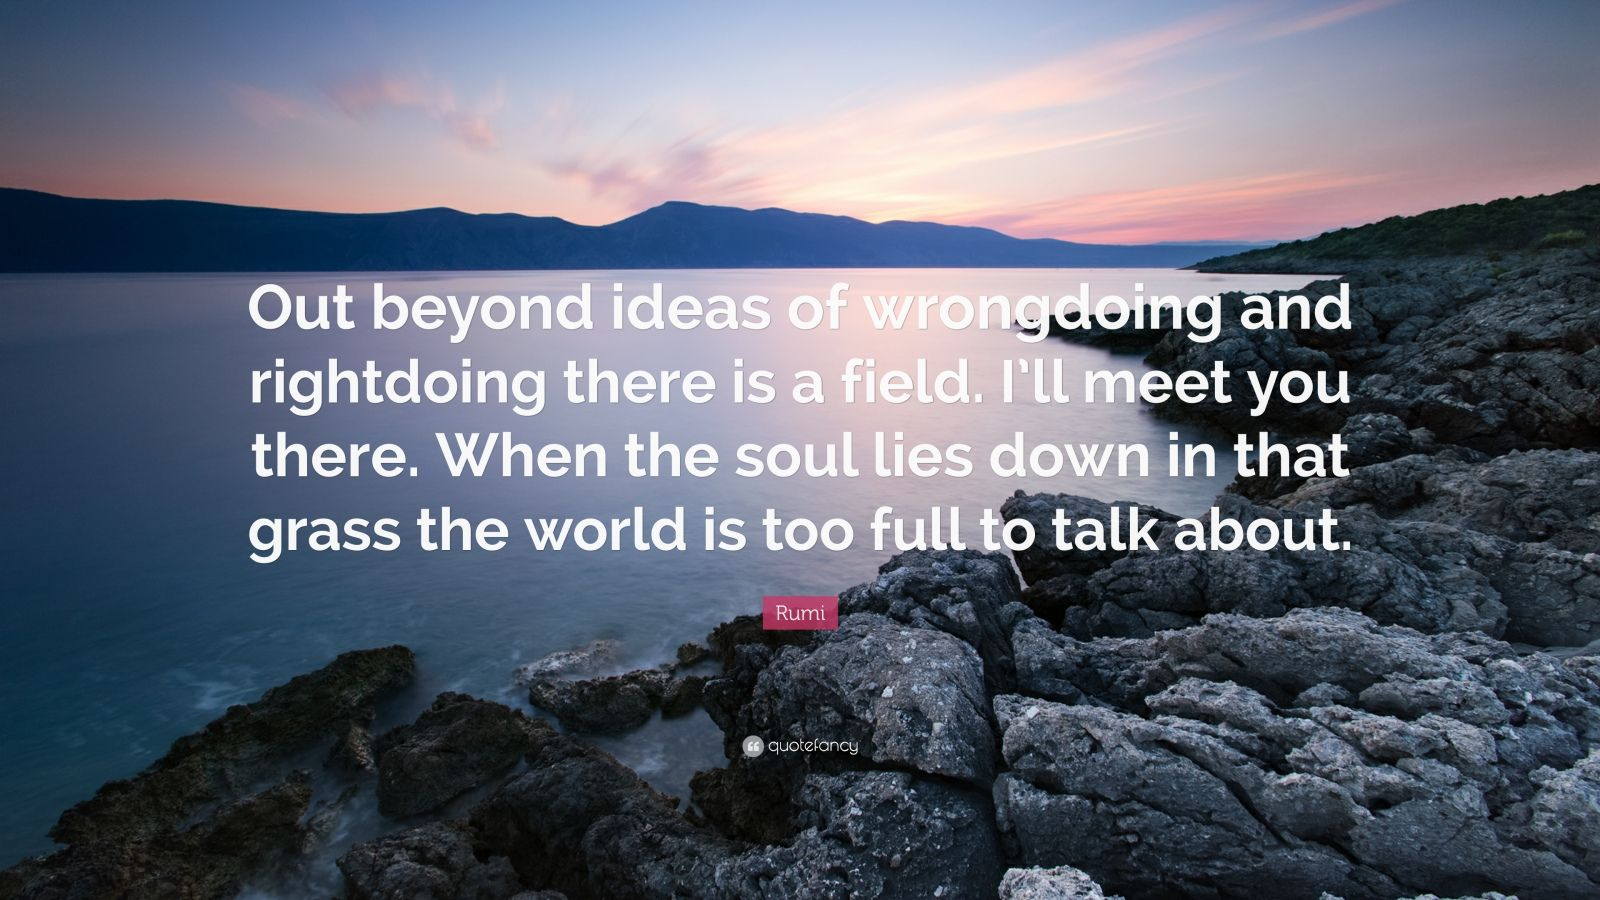 """Rumi Quote: """"Out beyond ideas of wrongdoing and rightdoing there is a field. I'll meet you there. When the soul lies down in that grass the world is too full to talk about."""""""